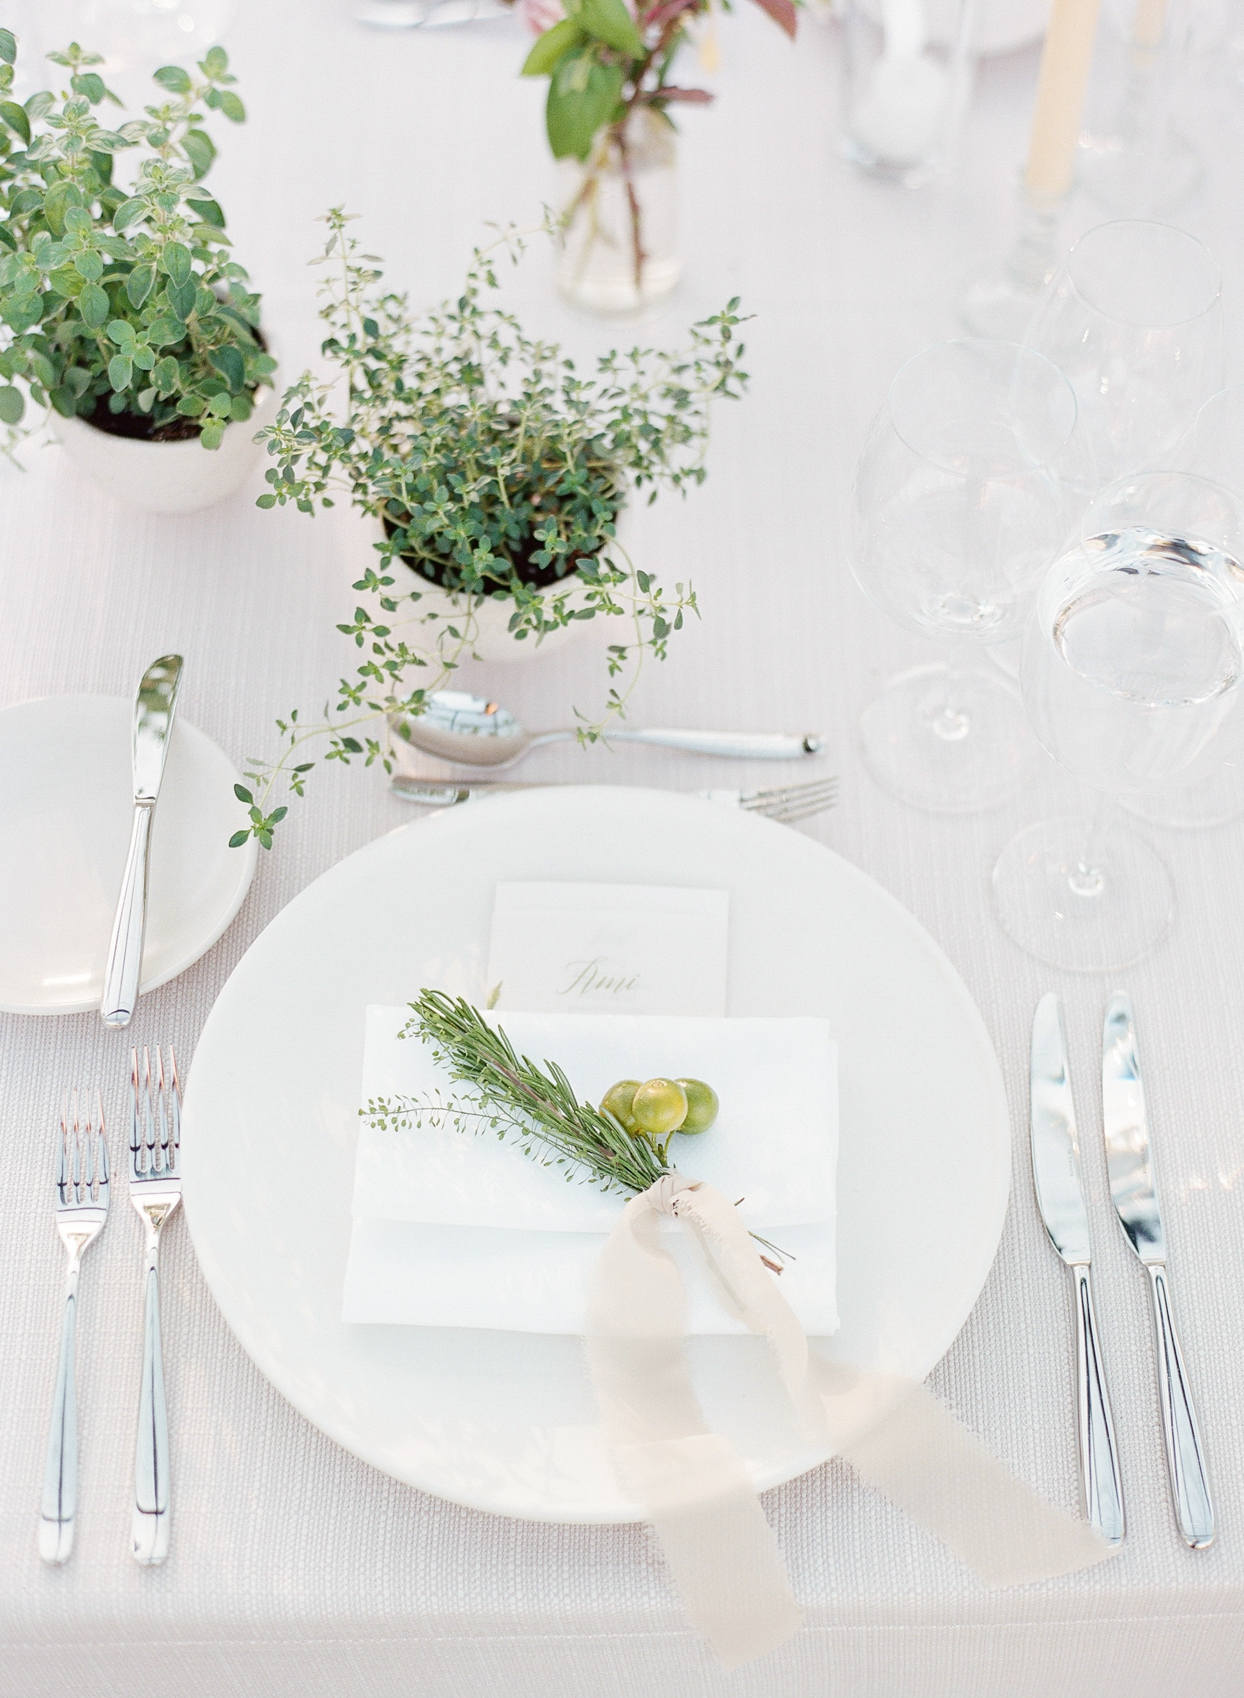 white place setting at wedding reception